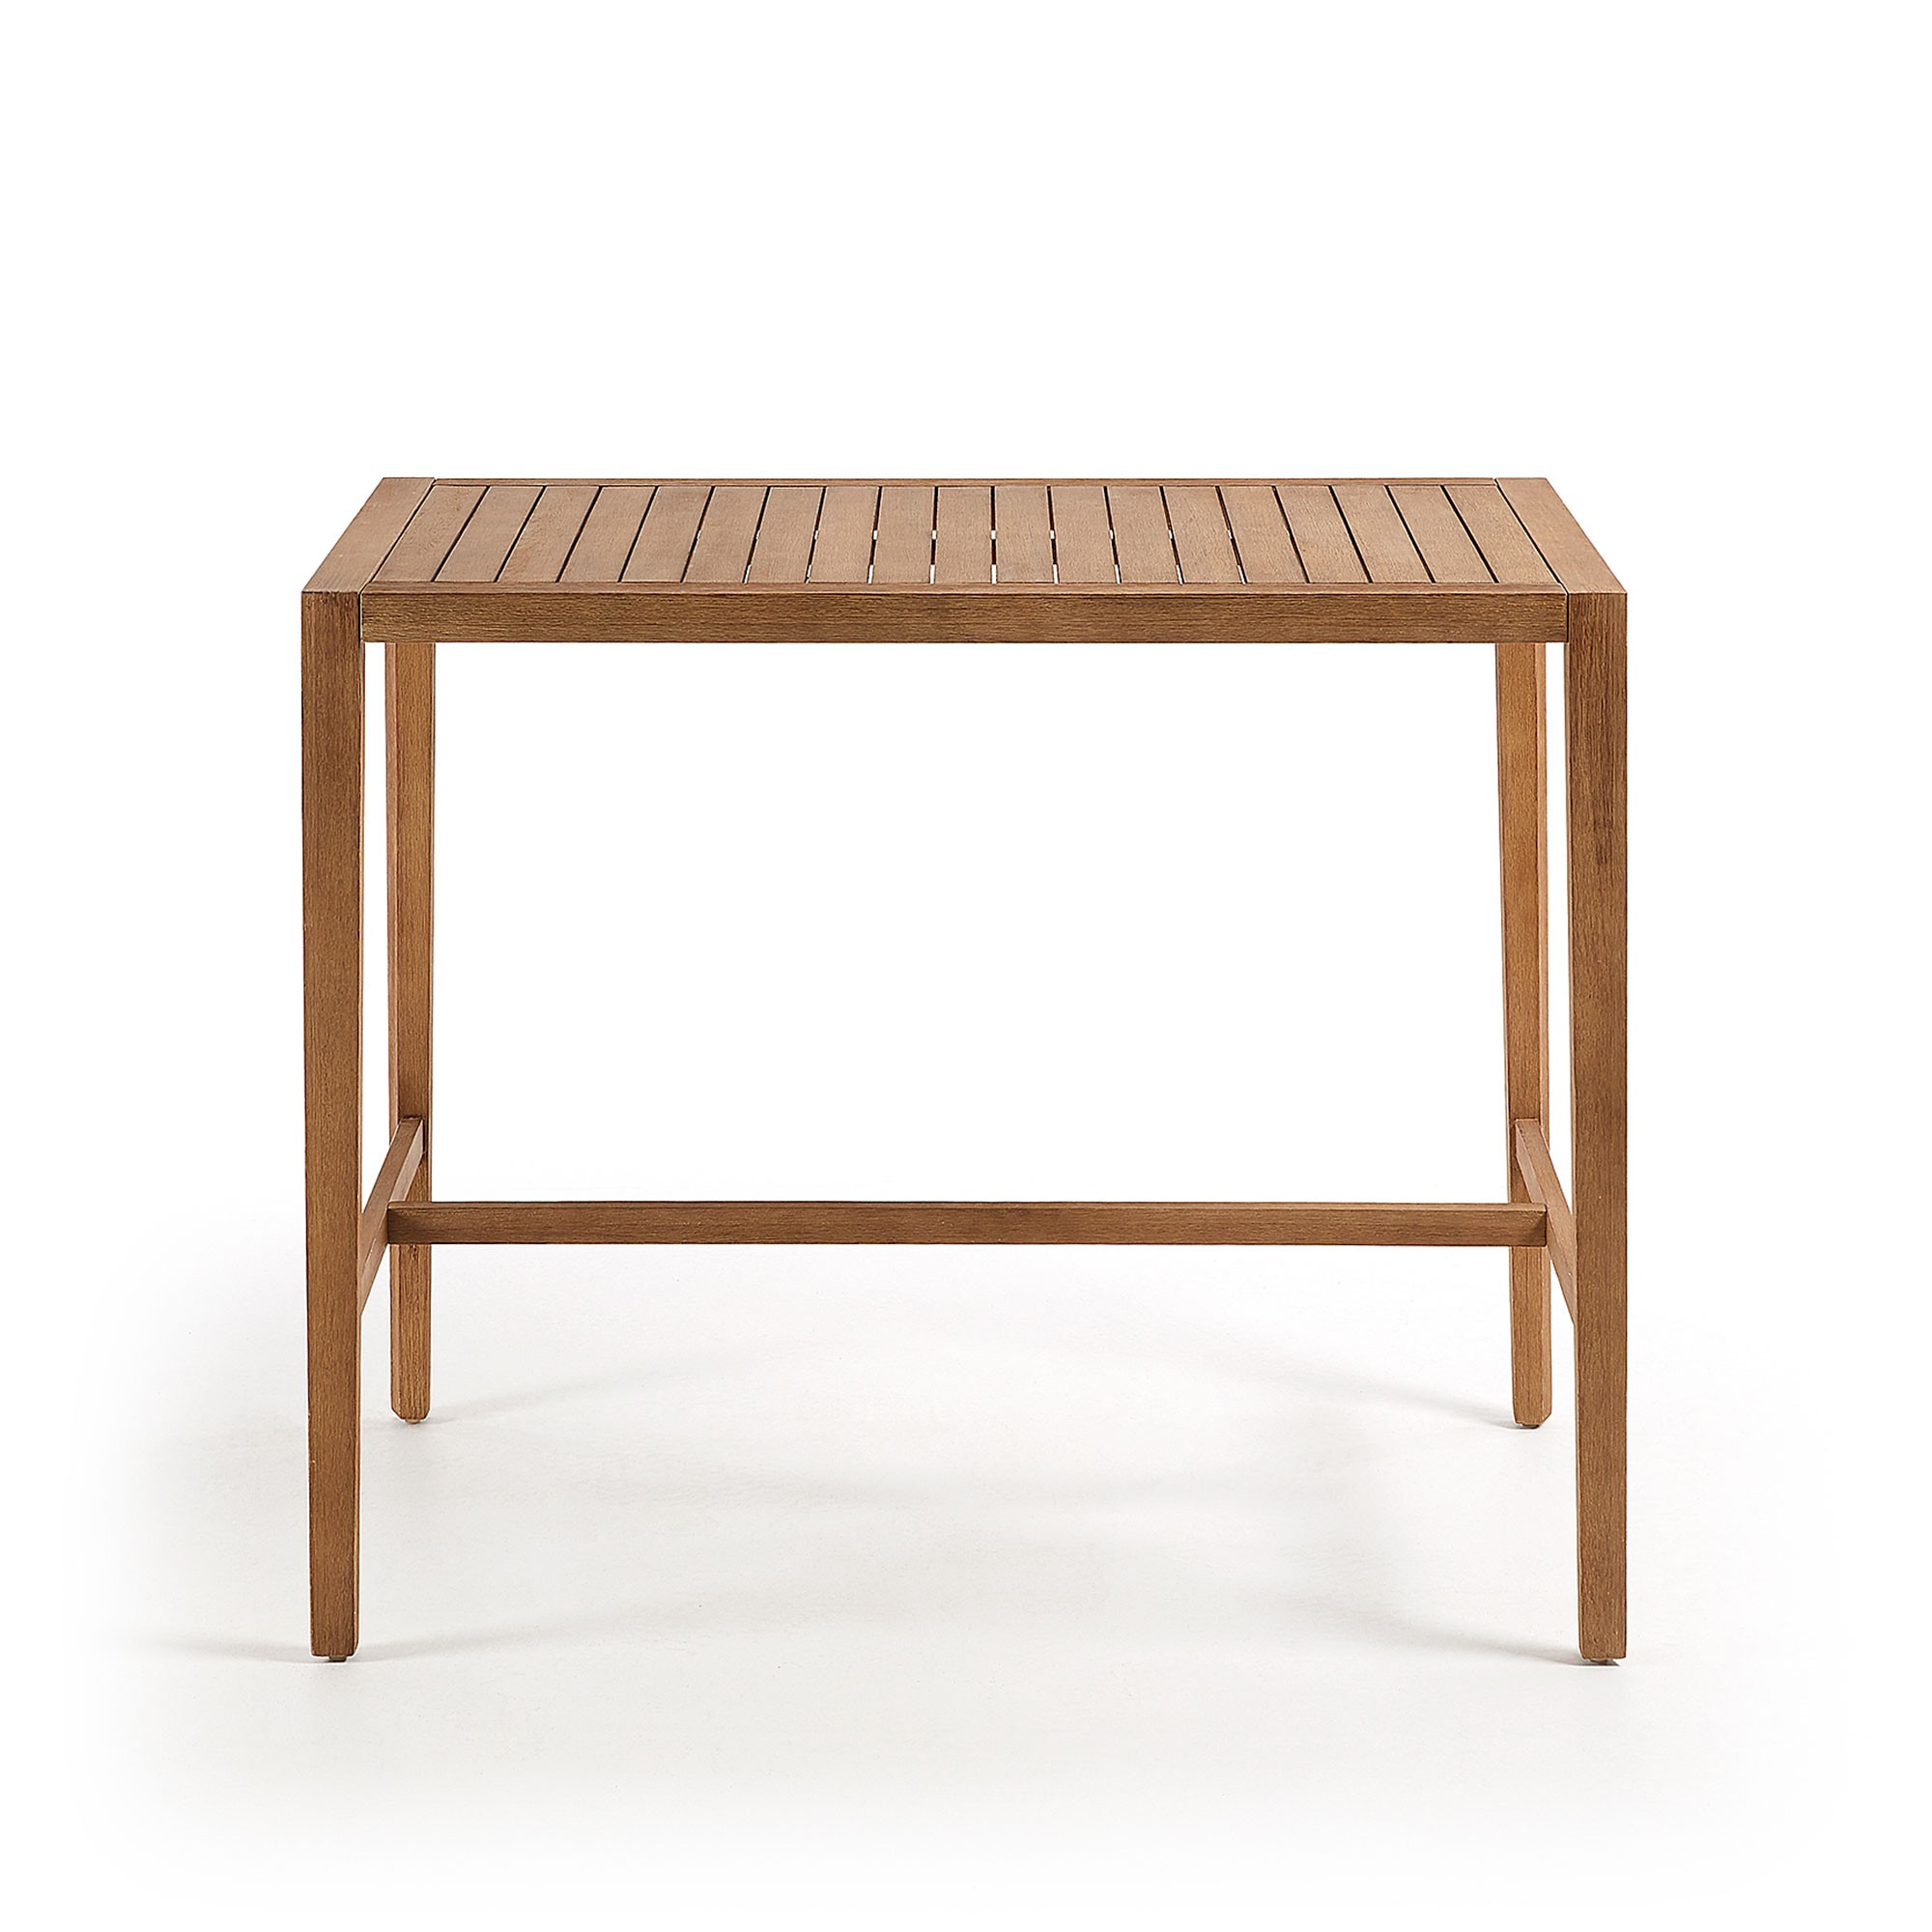 Grendon Eucalyptus Timber Outdoor Bar Table, 130cm